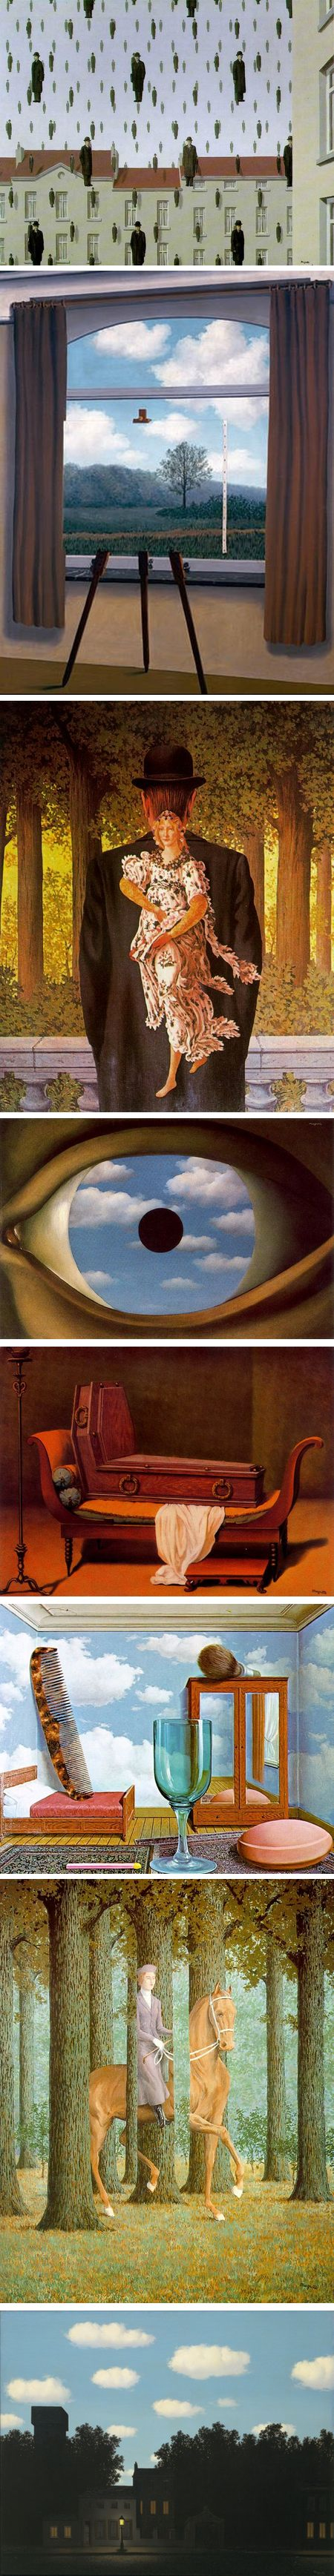 Rene Magritte: The Pleasure Principle